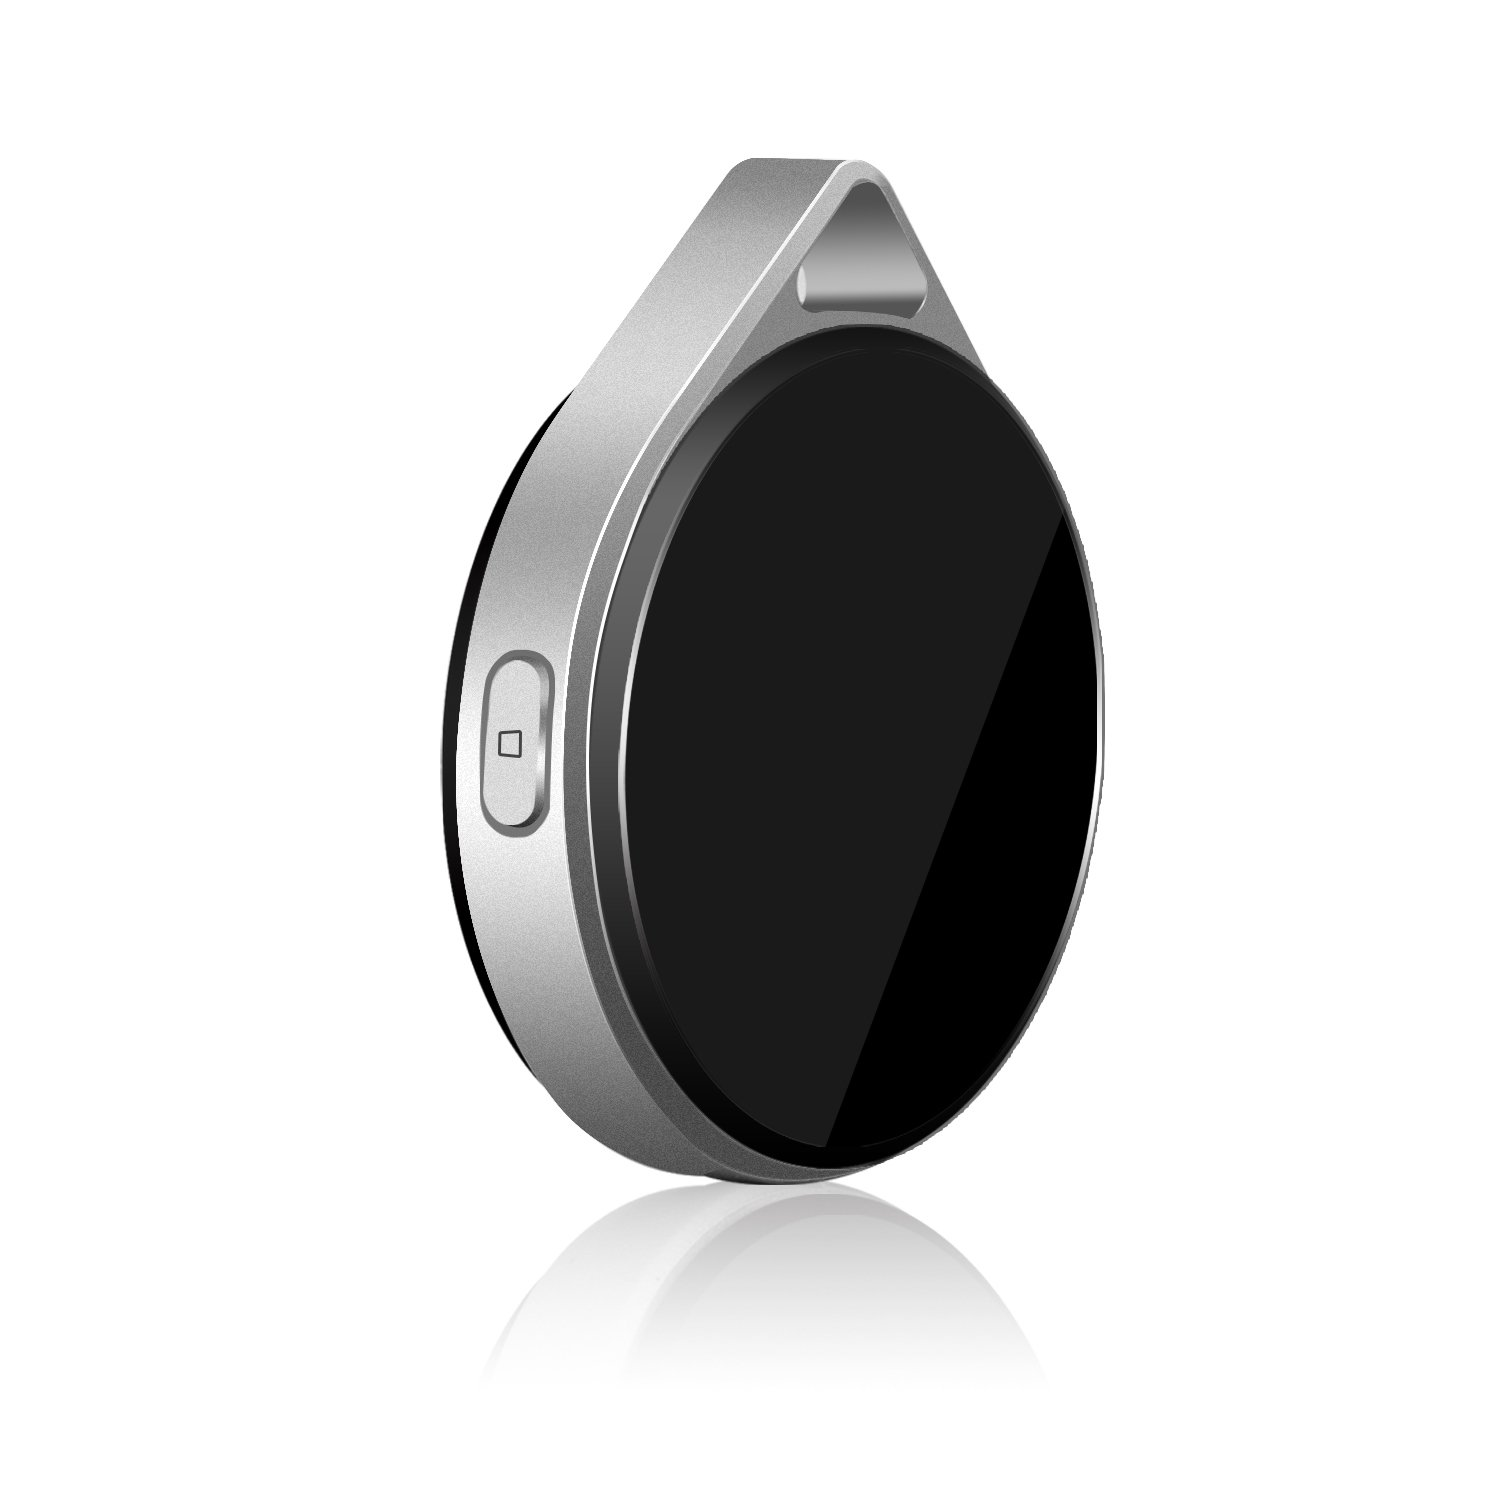 SmartElite Bluetooth 4.0 Tracking Device, Anti-lost Tracker/Smart Mini Finder/Anti-theft Alarm Locator for Phone, Wallet, Pets, Key & Other Small Items, Compatible with IOS & Android 4.3 (Black)